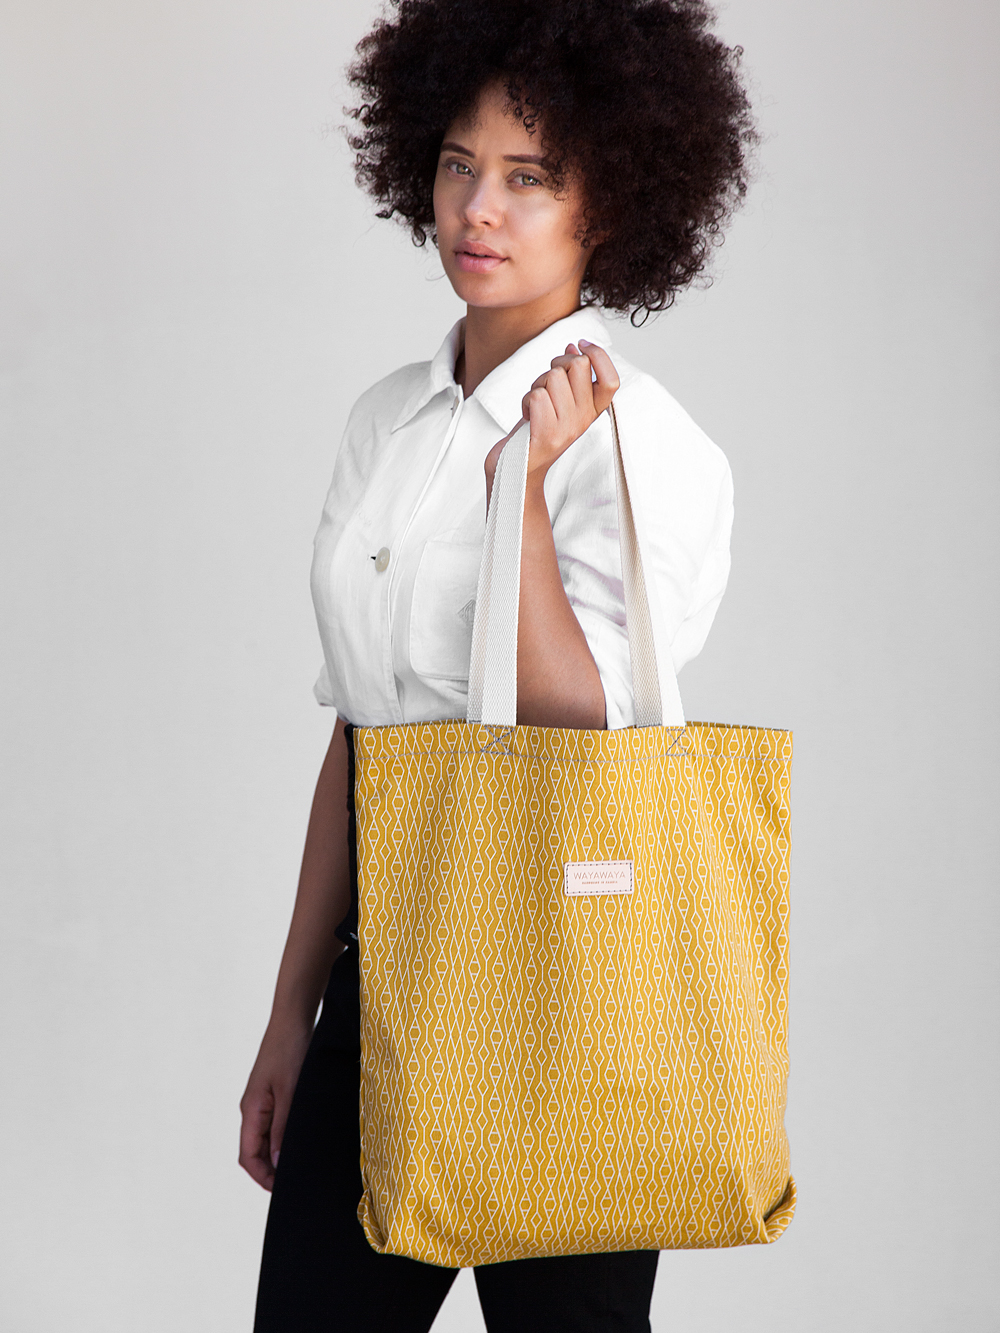 Alex-WAYAWAYA-Tote-Yellow-01.jpg